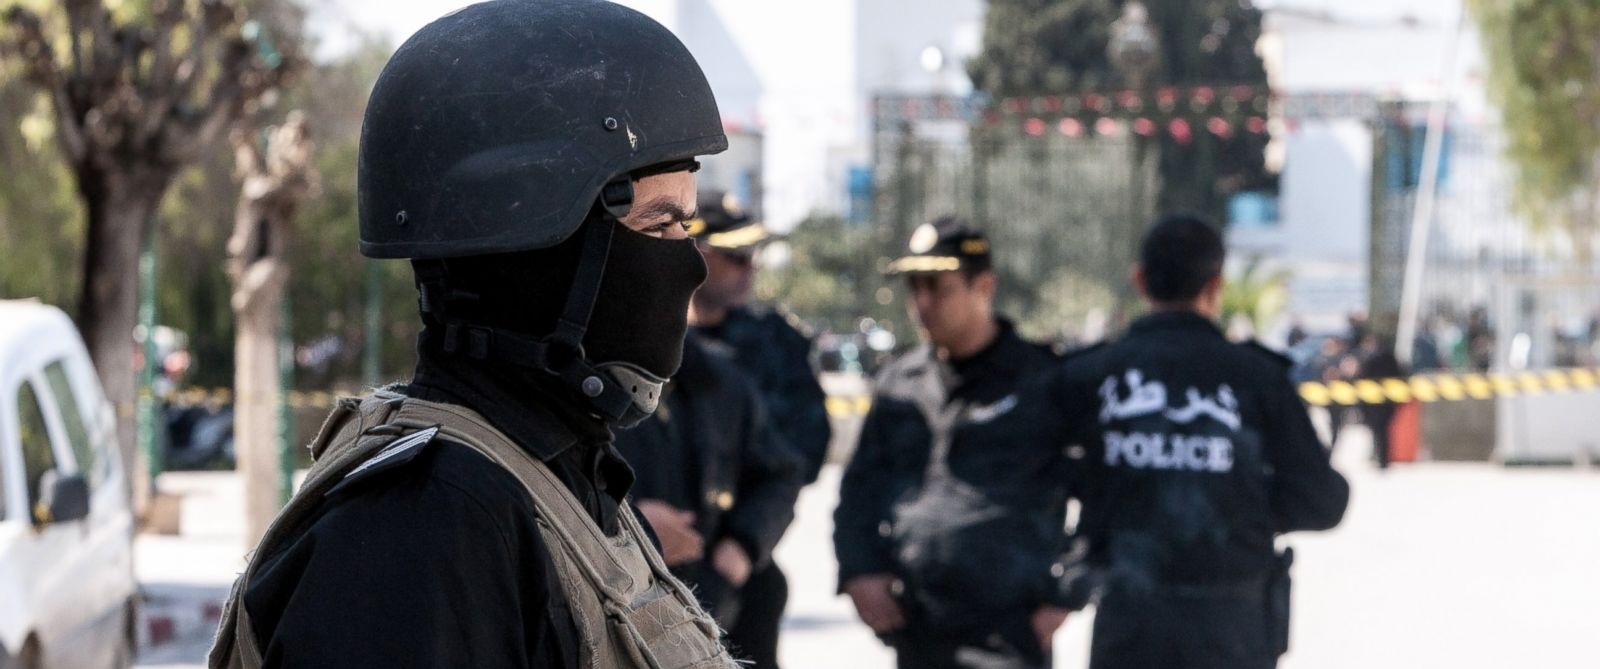 PHOTO: Tunisian police stand near the crime scene outside the National Bardo Museum in Tunis, Tunisia, March 19, 2015, after the attack at museum.